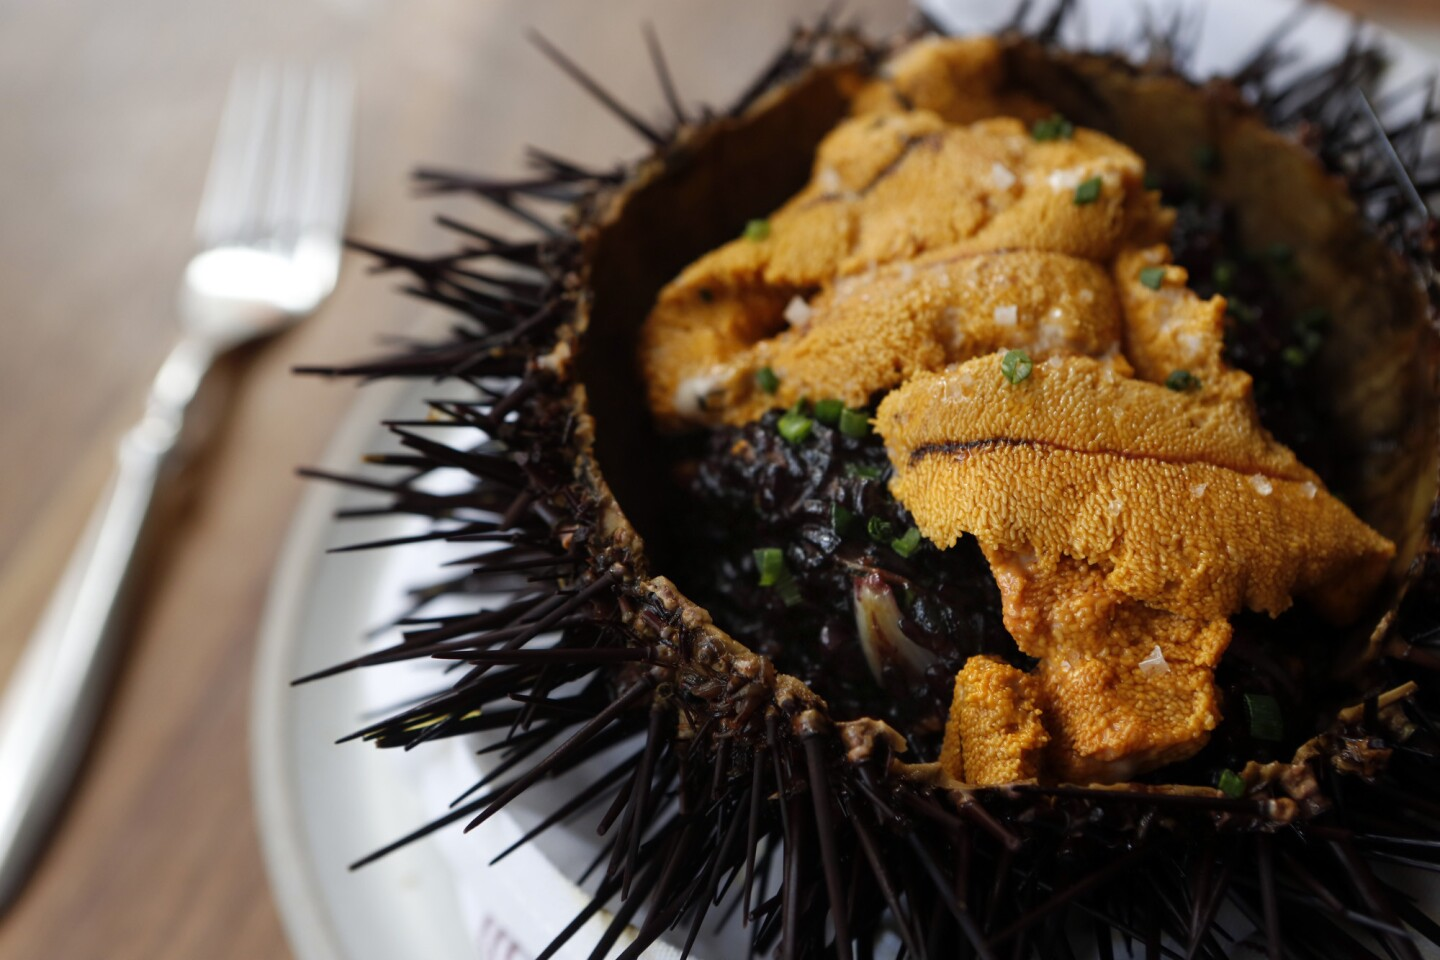 Uni, or sea urchin, rests on a bed of black risotto served inside a hollowed shell of a sea urchin at Dudley Market restaurant in Venice.